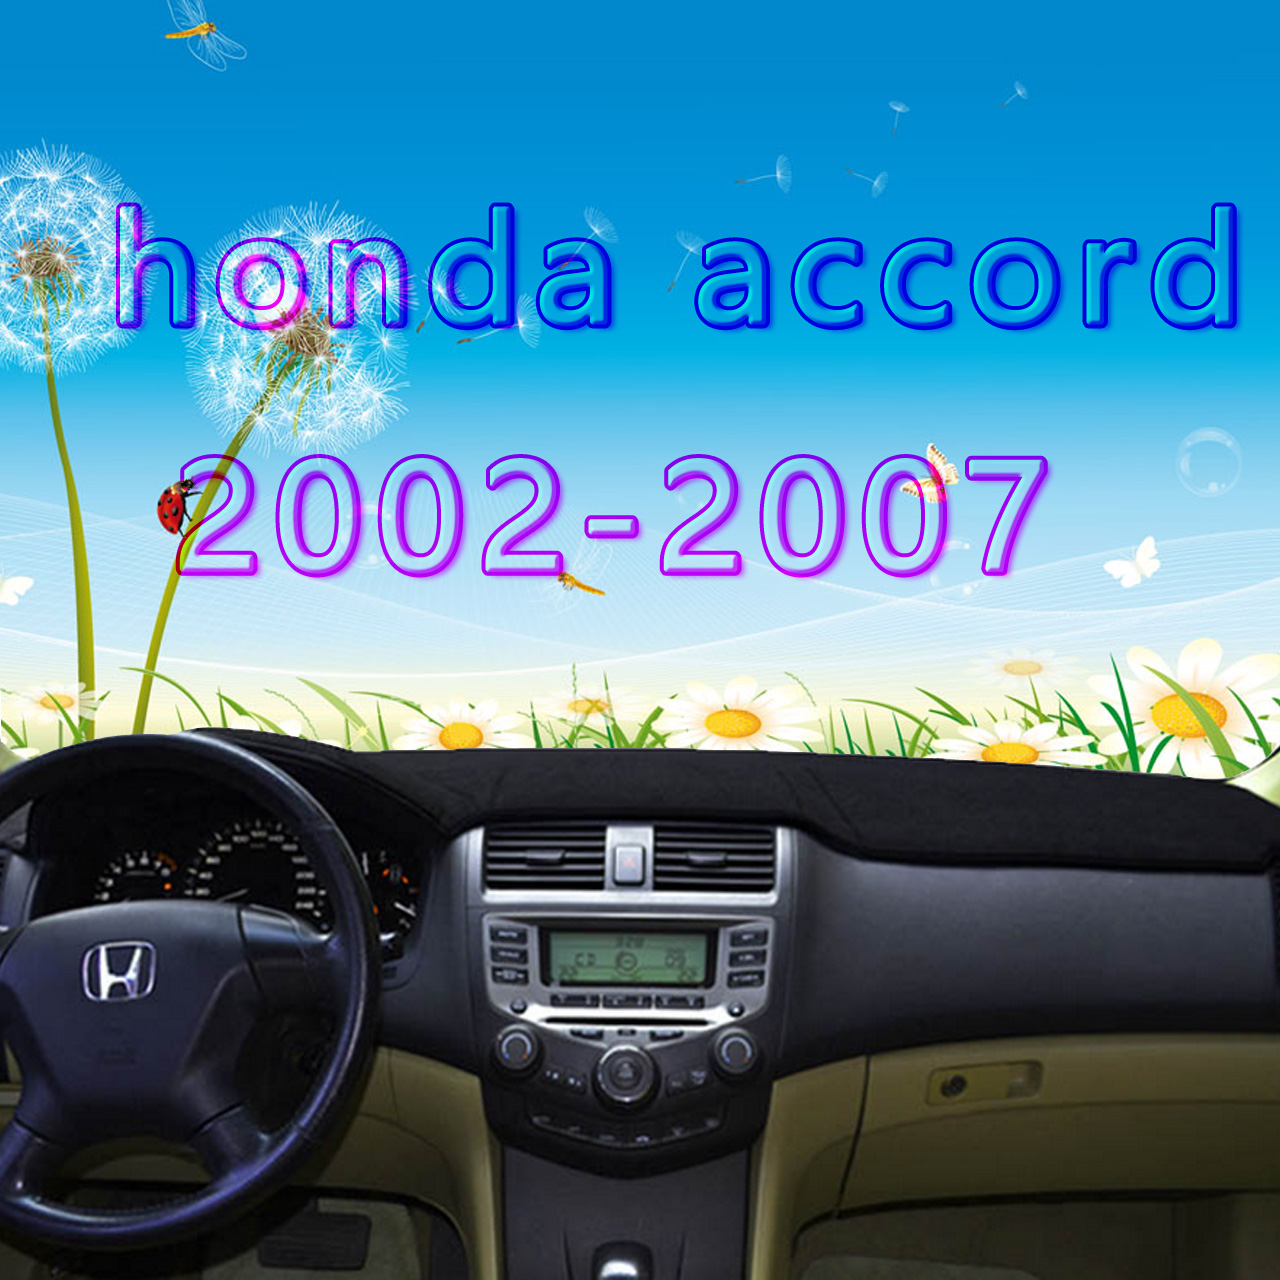 dashmats car-styling accessories dashboard <font><b>cover</b></font> for <font><b>honda</b></font> <font><b>accord</b></font> 2002 2003 2004 2005 2006 <font><b>2007</b></font> Seventh generation image